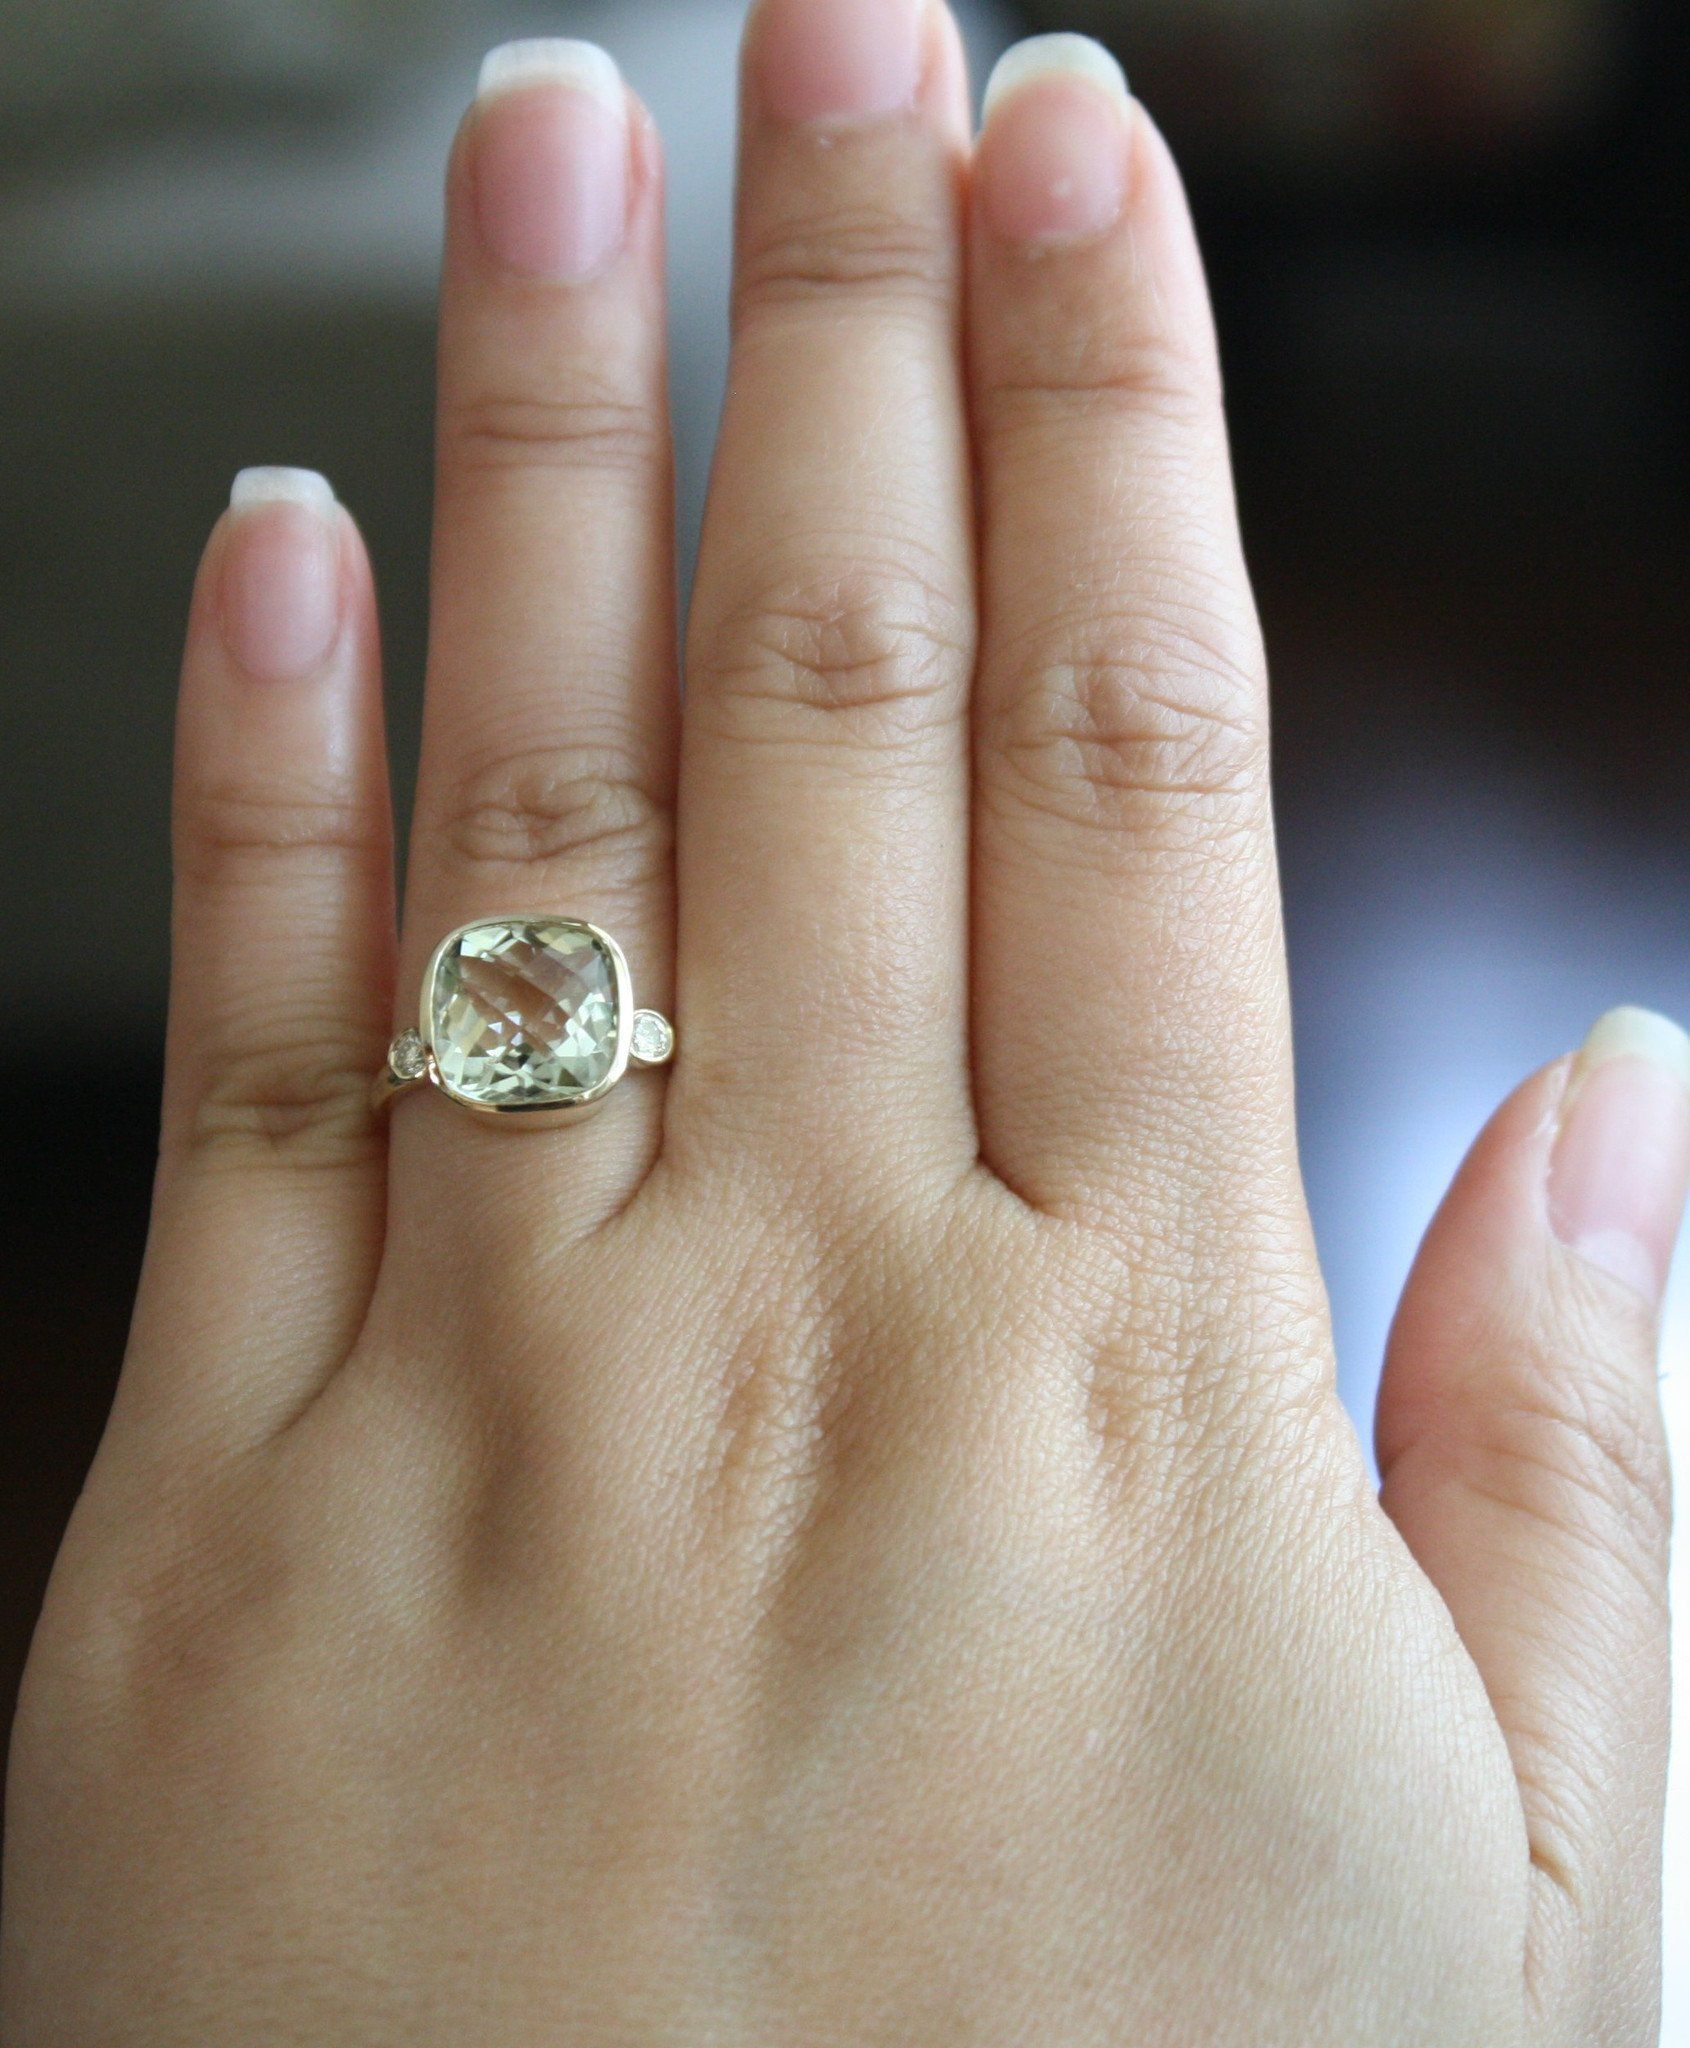 3 Stone Green Amethyst Bezel And Diamond Ring In 14k Yellow Gold Amethyst Ring Engagement Pink Diamonds Engagement Antique Diamond Engagement Rings